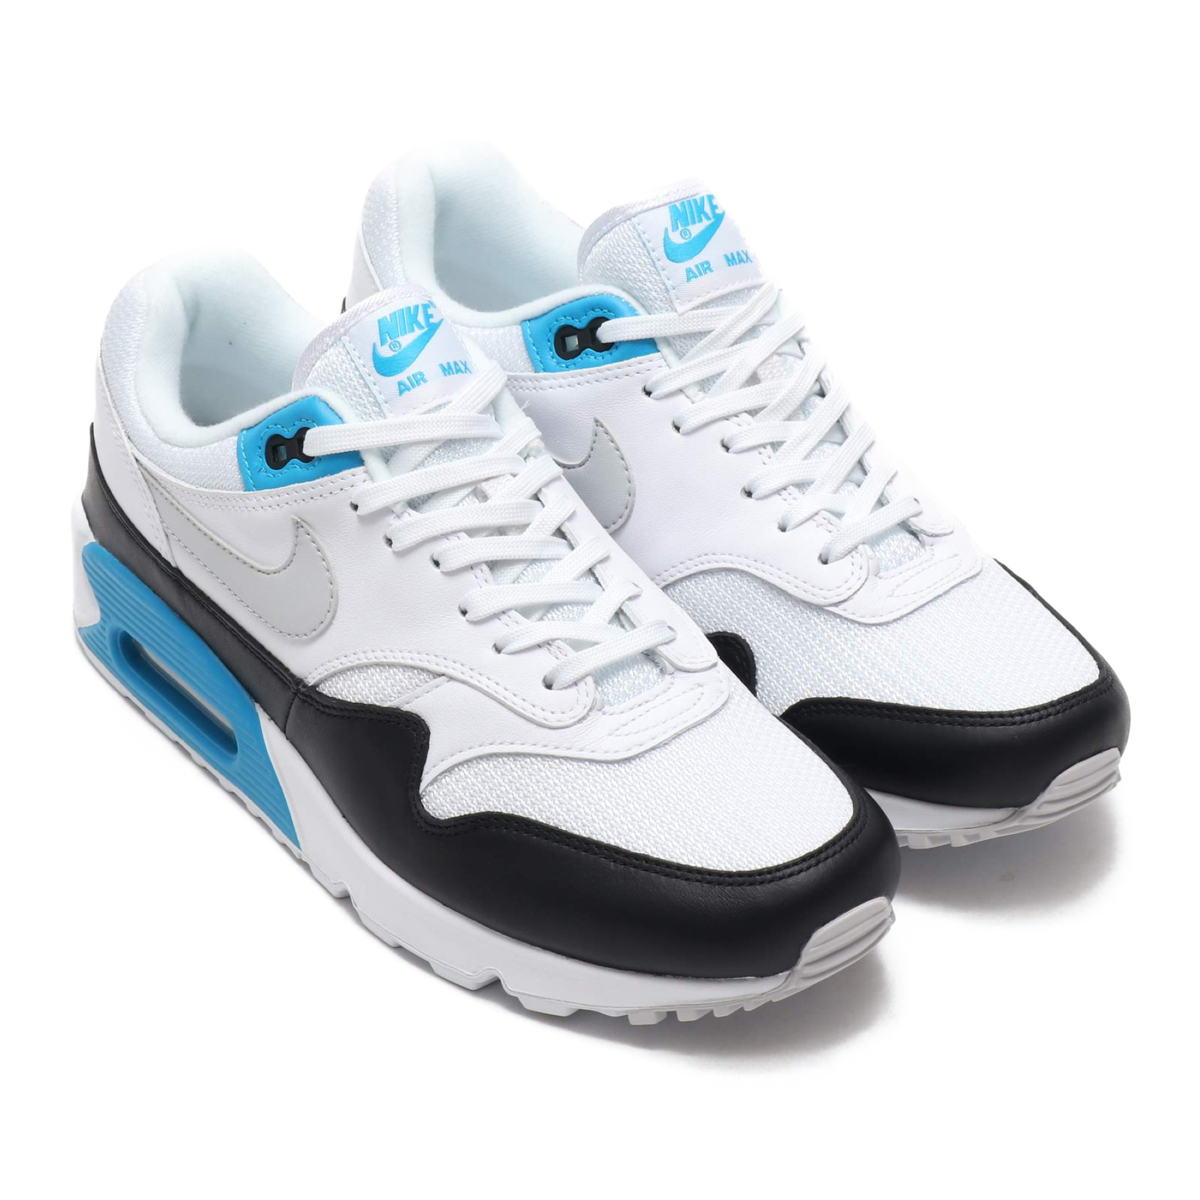 quality design b17e1 a7a7b ☆Super SALE period-limited point 10 times! It is ☆ NIKE AIR MAX ...